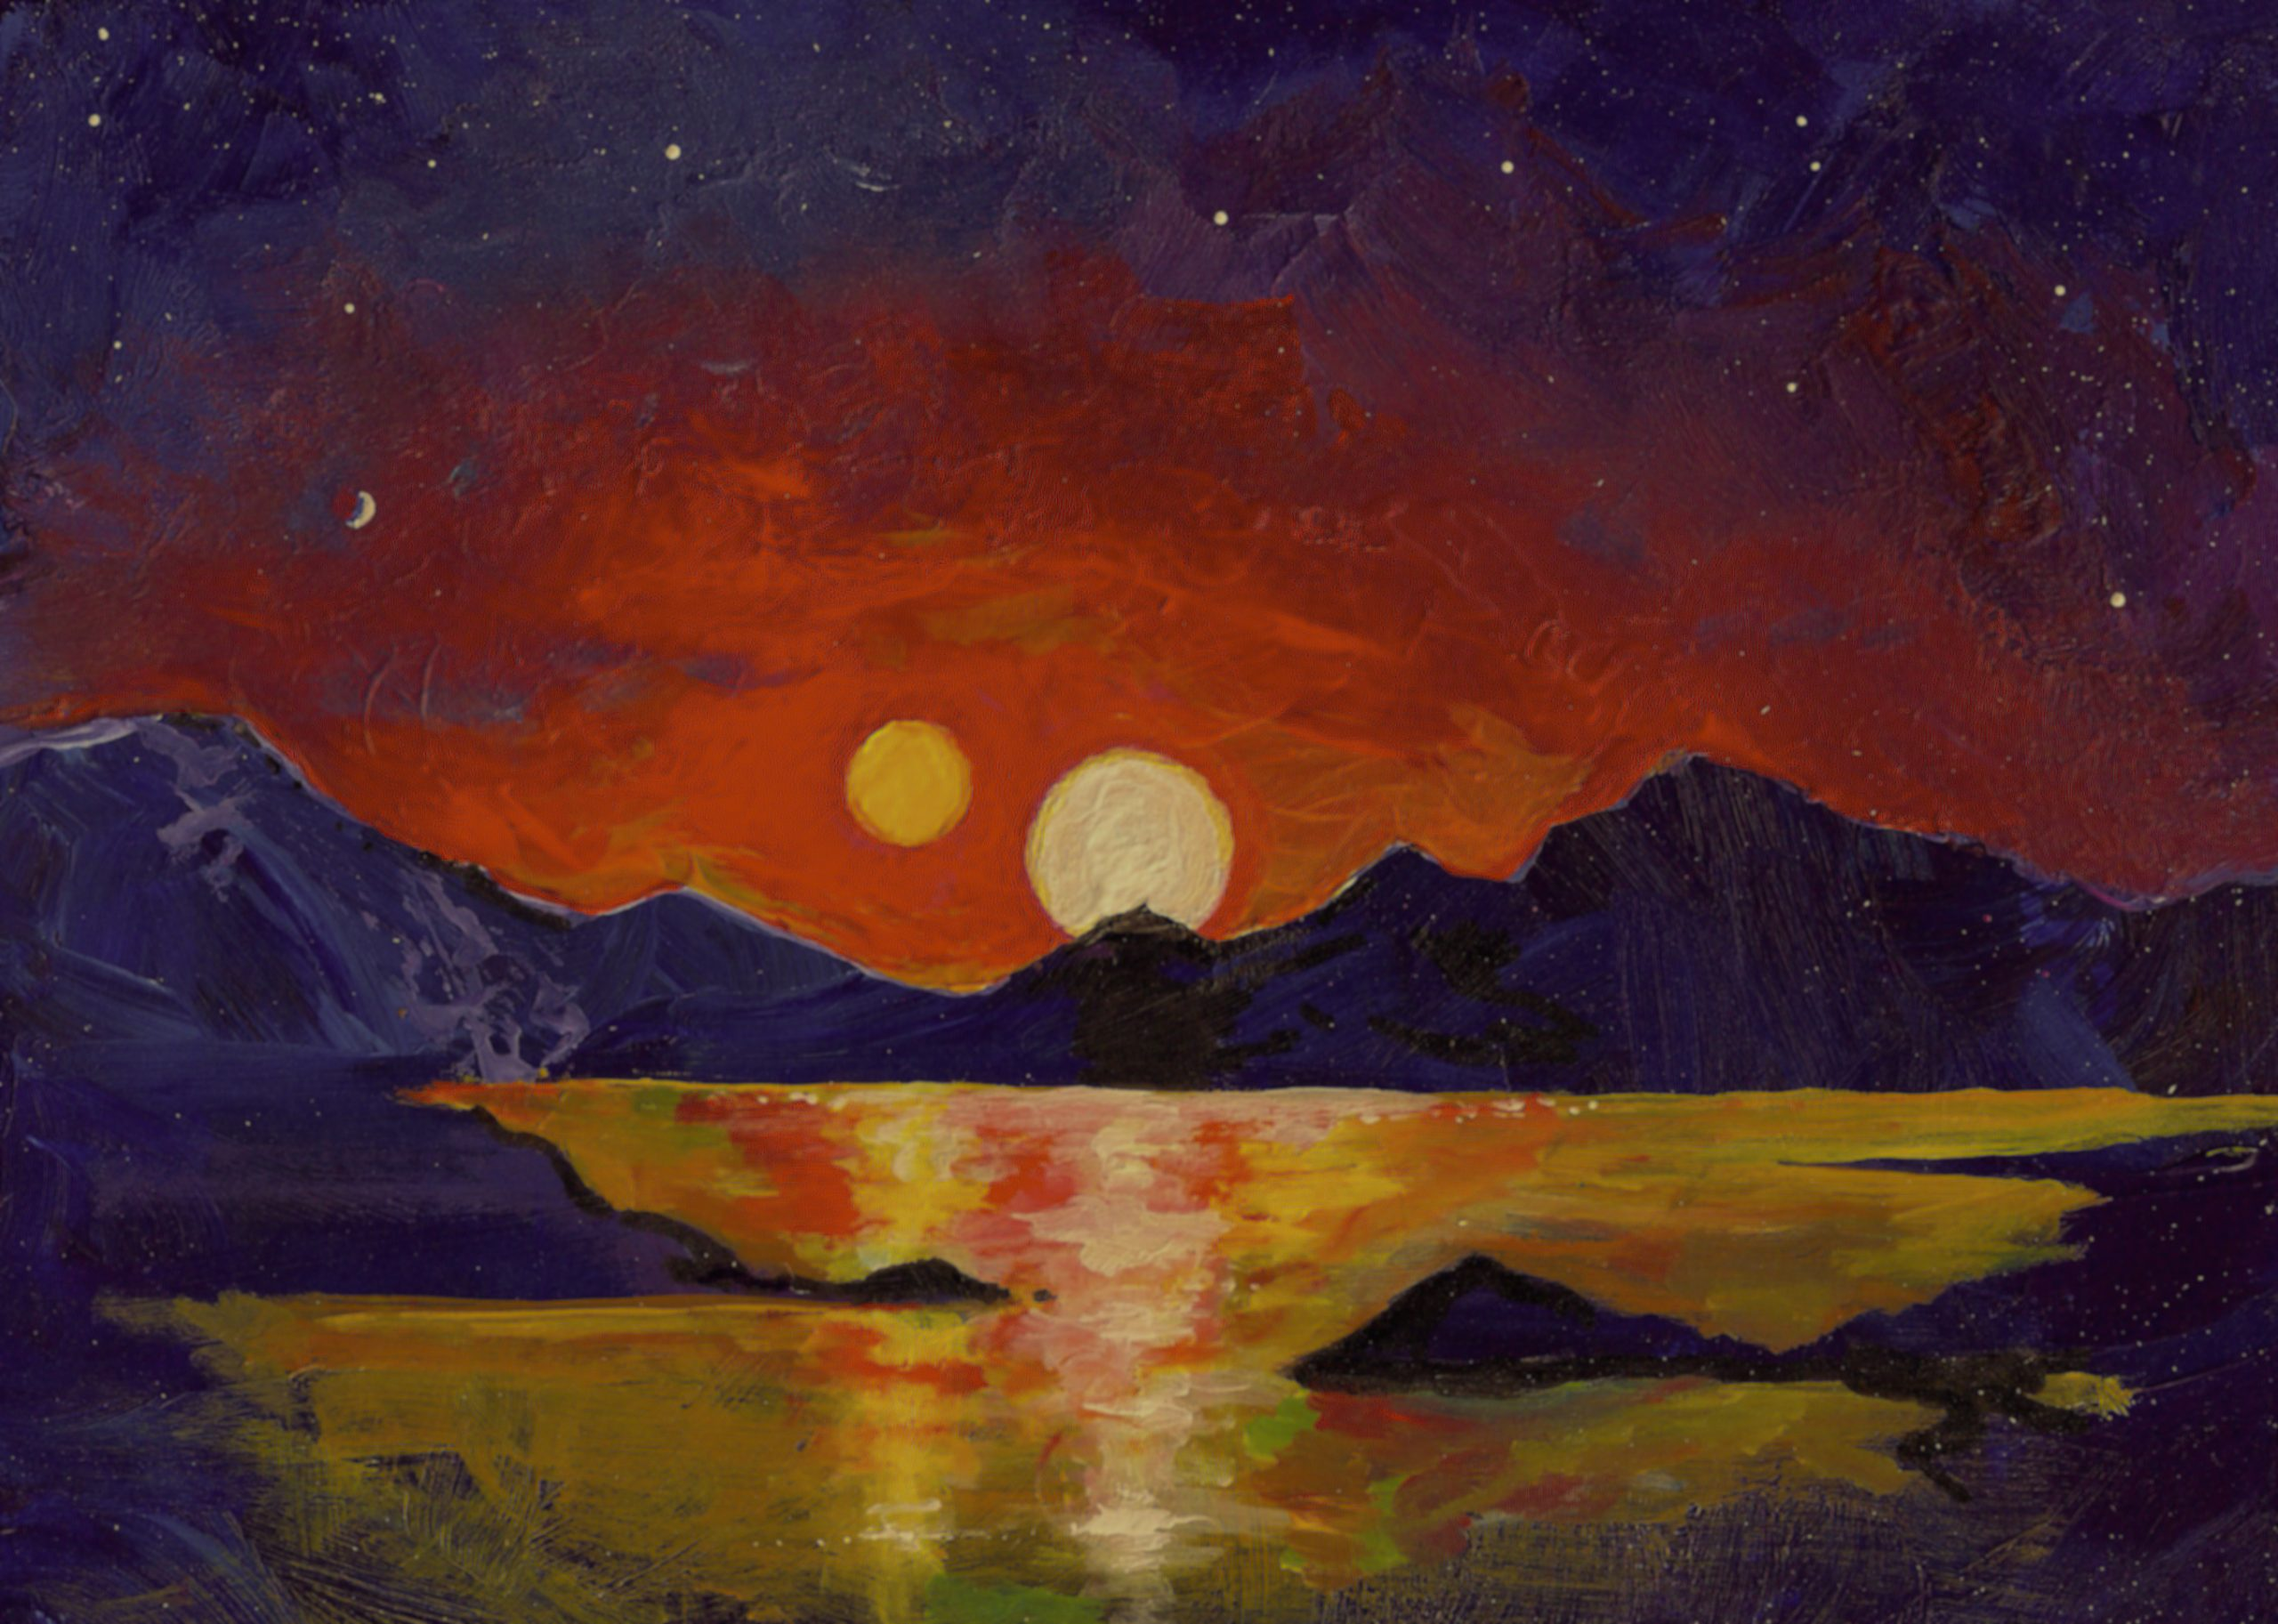 """In this acrylic painting, University of Utah astrophysicist Ben Bromley envisions the view of a double sunset from an uninhabited Earthlike planet orbiting a pair of binary stars. In a new study, Bromley and Scott Kenyon of the Smithsonian Astrophysical Observatory performed mathematical analysis and simulations showing that it is possible for a rocky planet to form around binary stars, like Luke Skywalker's home planet Tatooine in the """"Star Wars"""" films. So far, NASA's Kepler space telescope has found only gas-giant planets like Saturn or Neptune orbiting binary stars."""